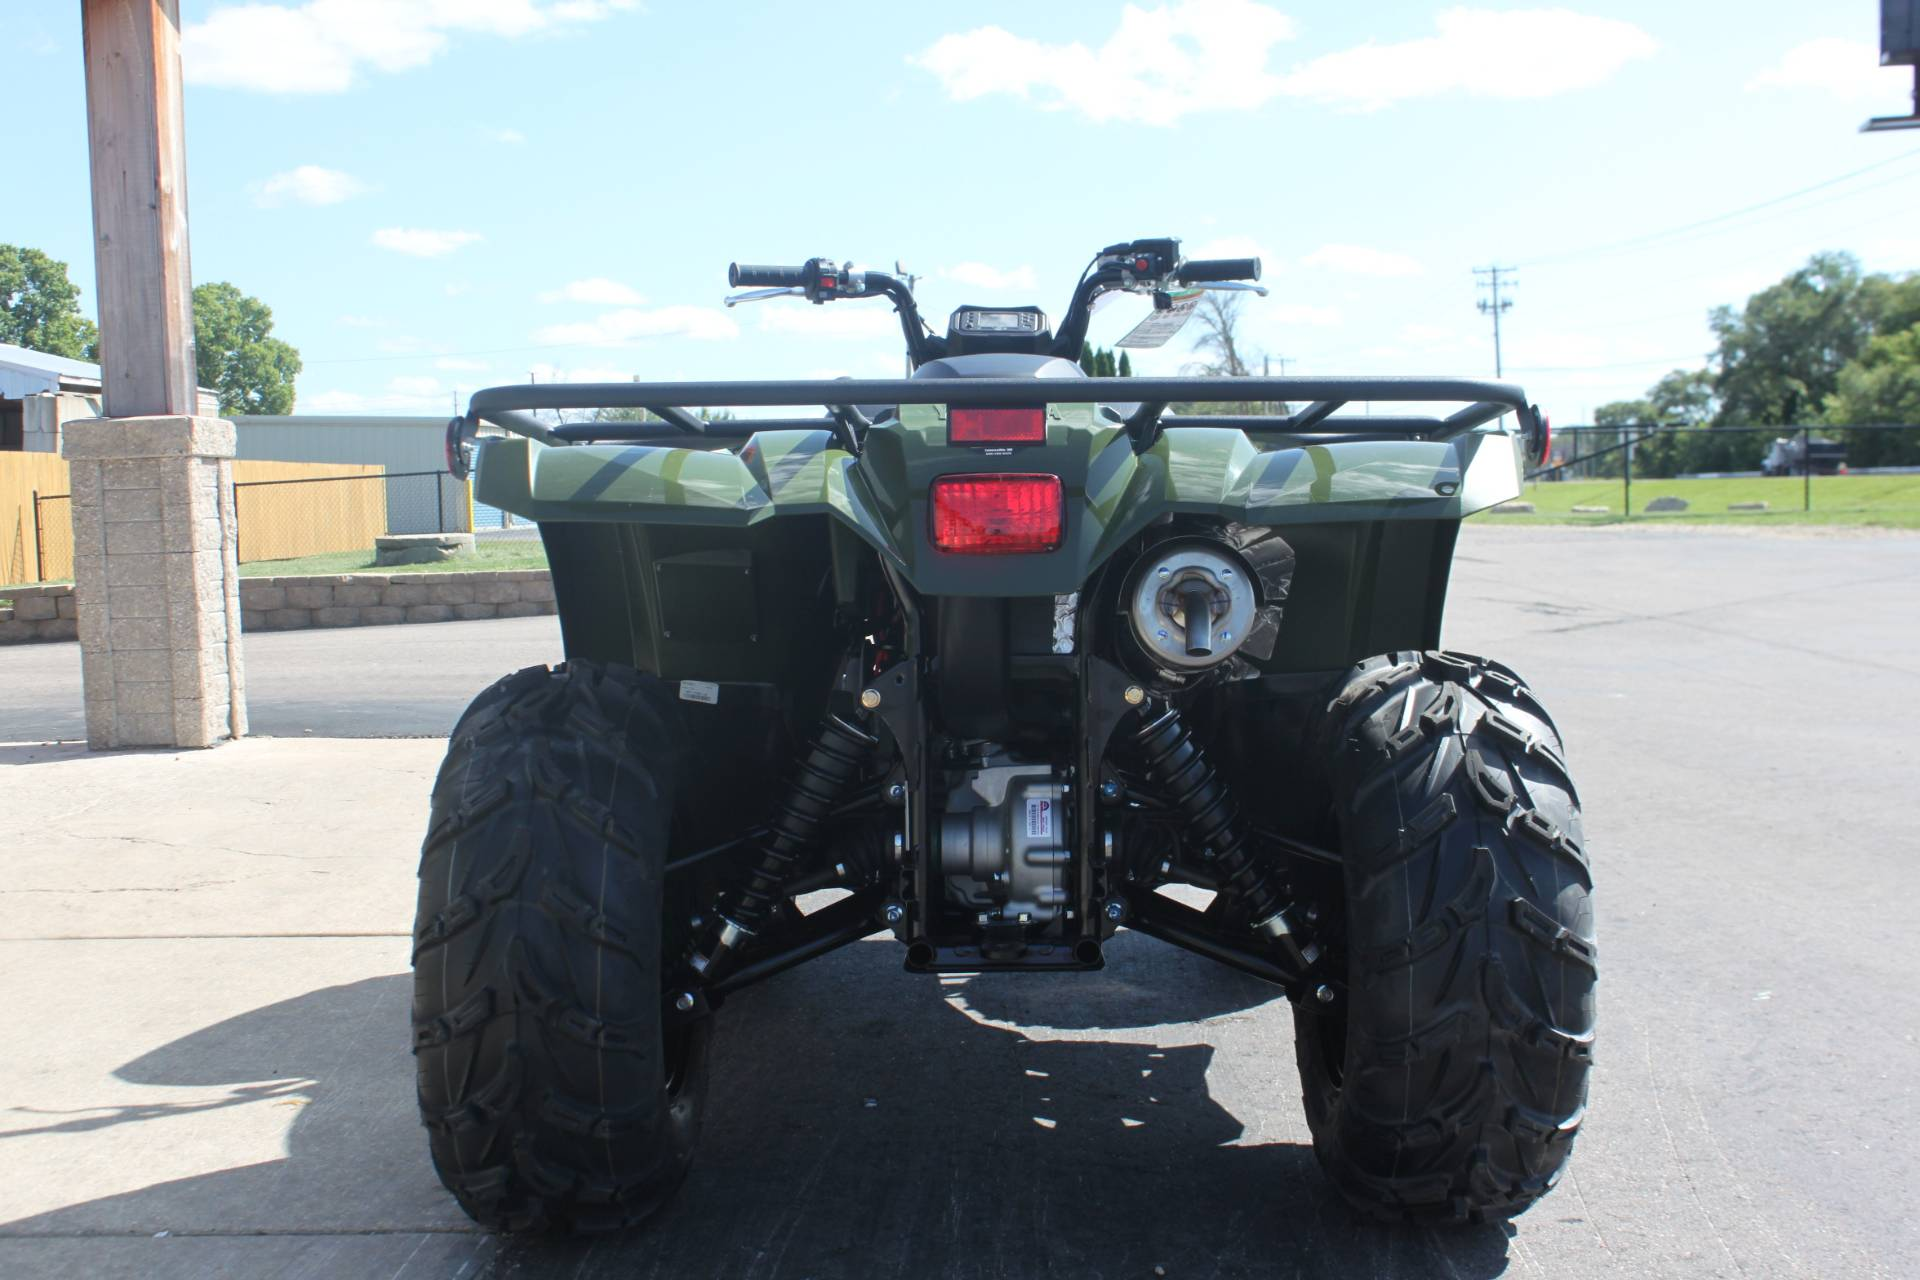 2020 Yamaha Kodiak 450 in Janesville, Wisconsin - Photo 33